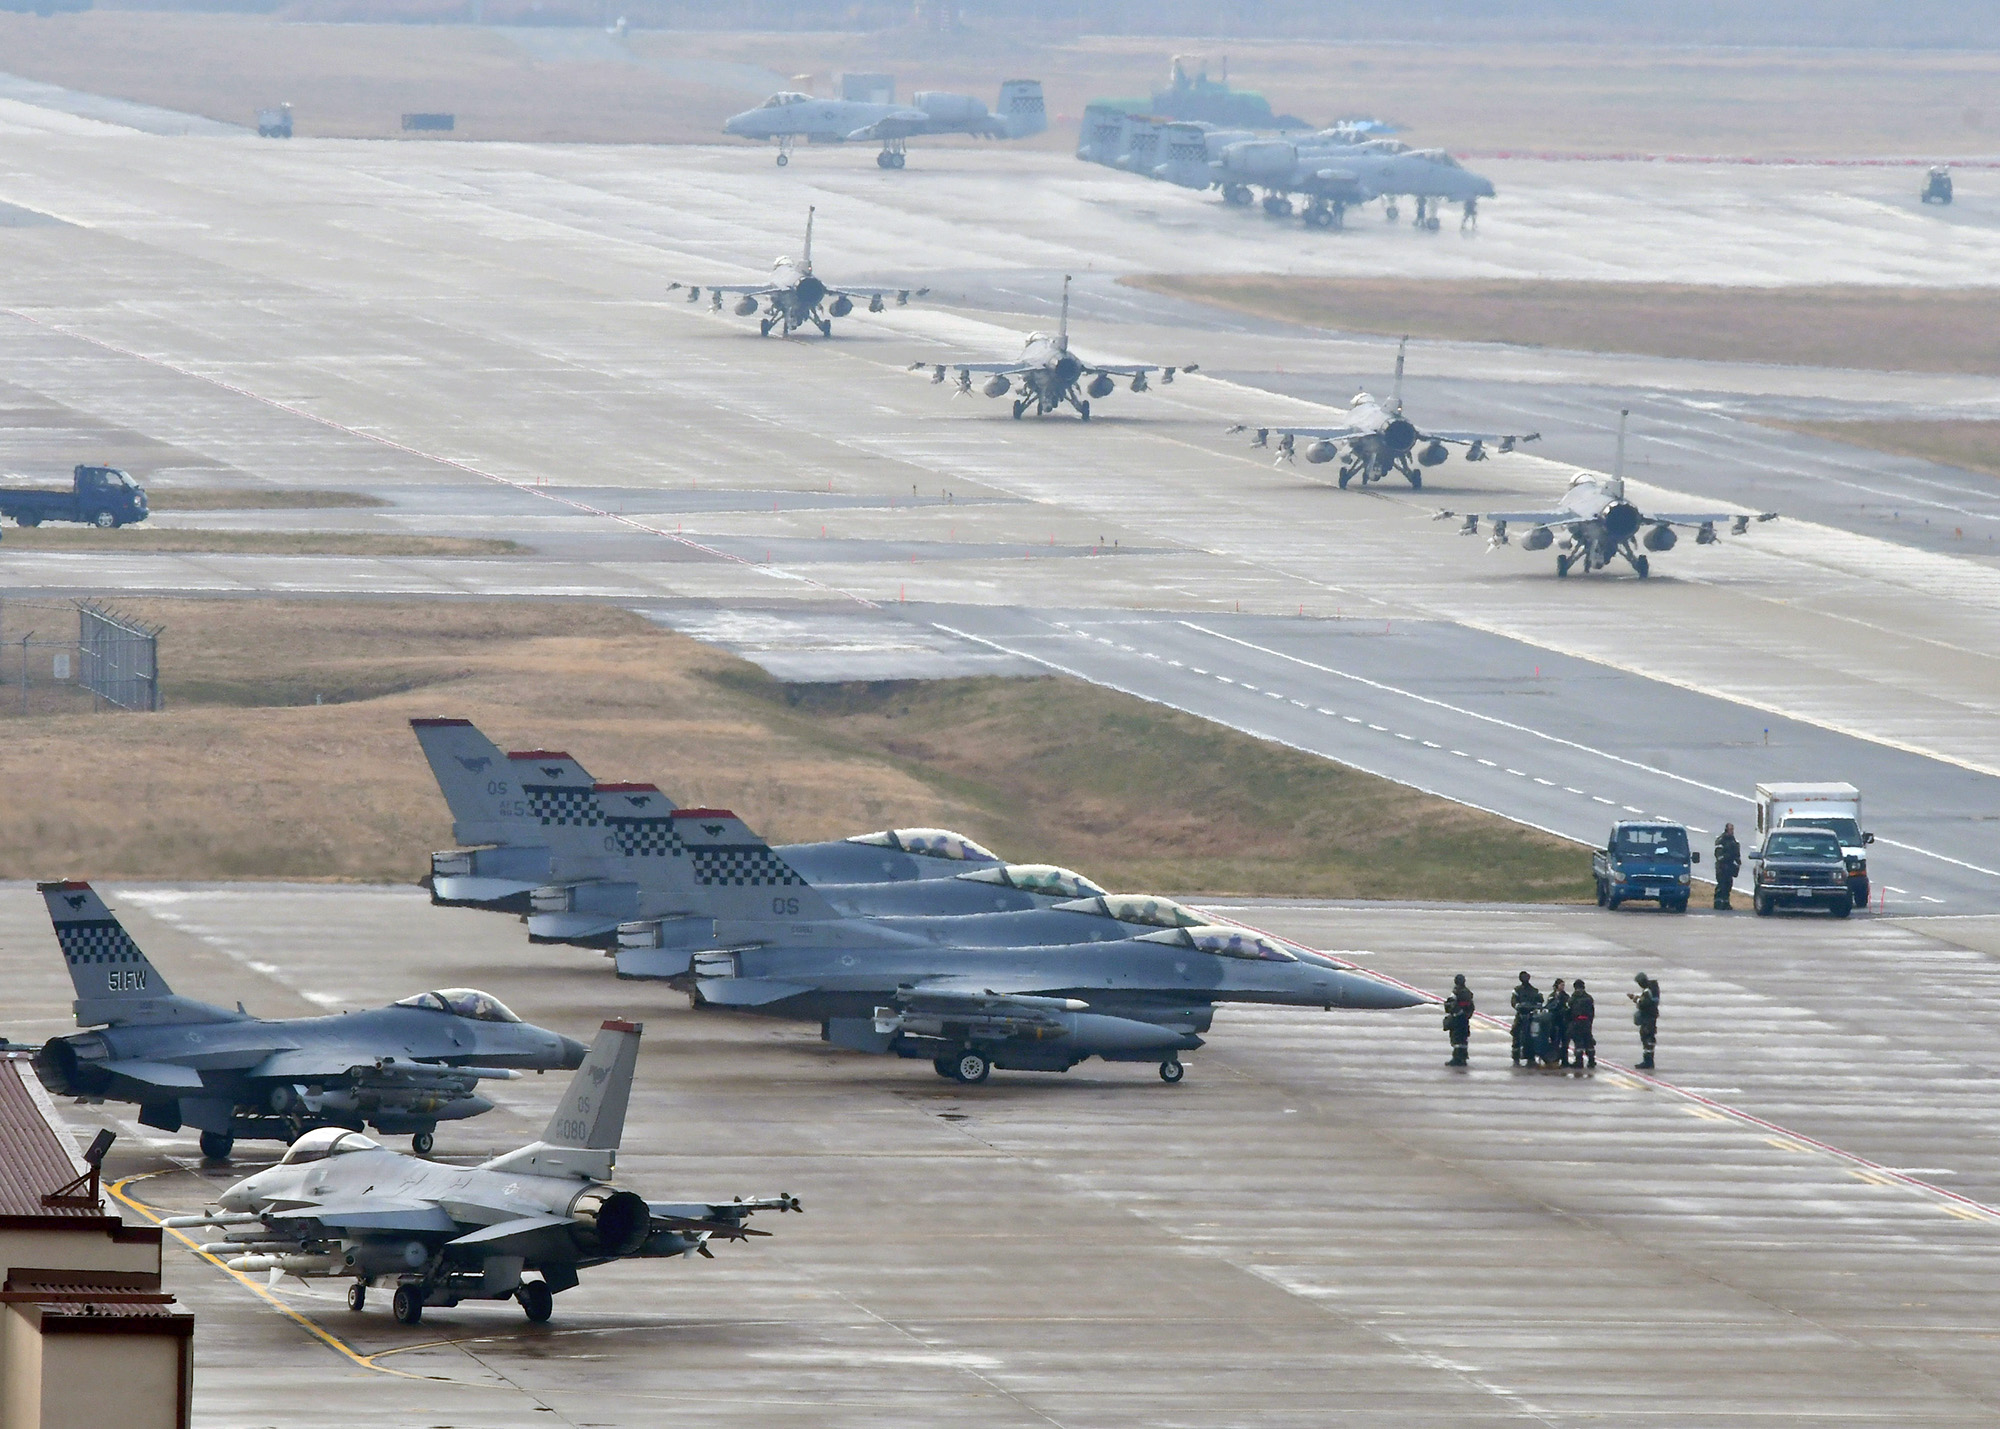 U.S. Air Force F-16 Fighting Falcon fighter aircraft, assigned to the 36th Fighter Squadron, participate in an elephant walk during Exercise Vigilant Ace 18 at Osan Air Base, South Korea on Dec. 3, 2017. (Staff Sgt. Franklin R. Ramos/U.S. Air Force)